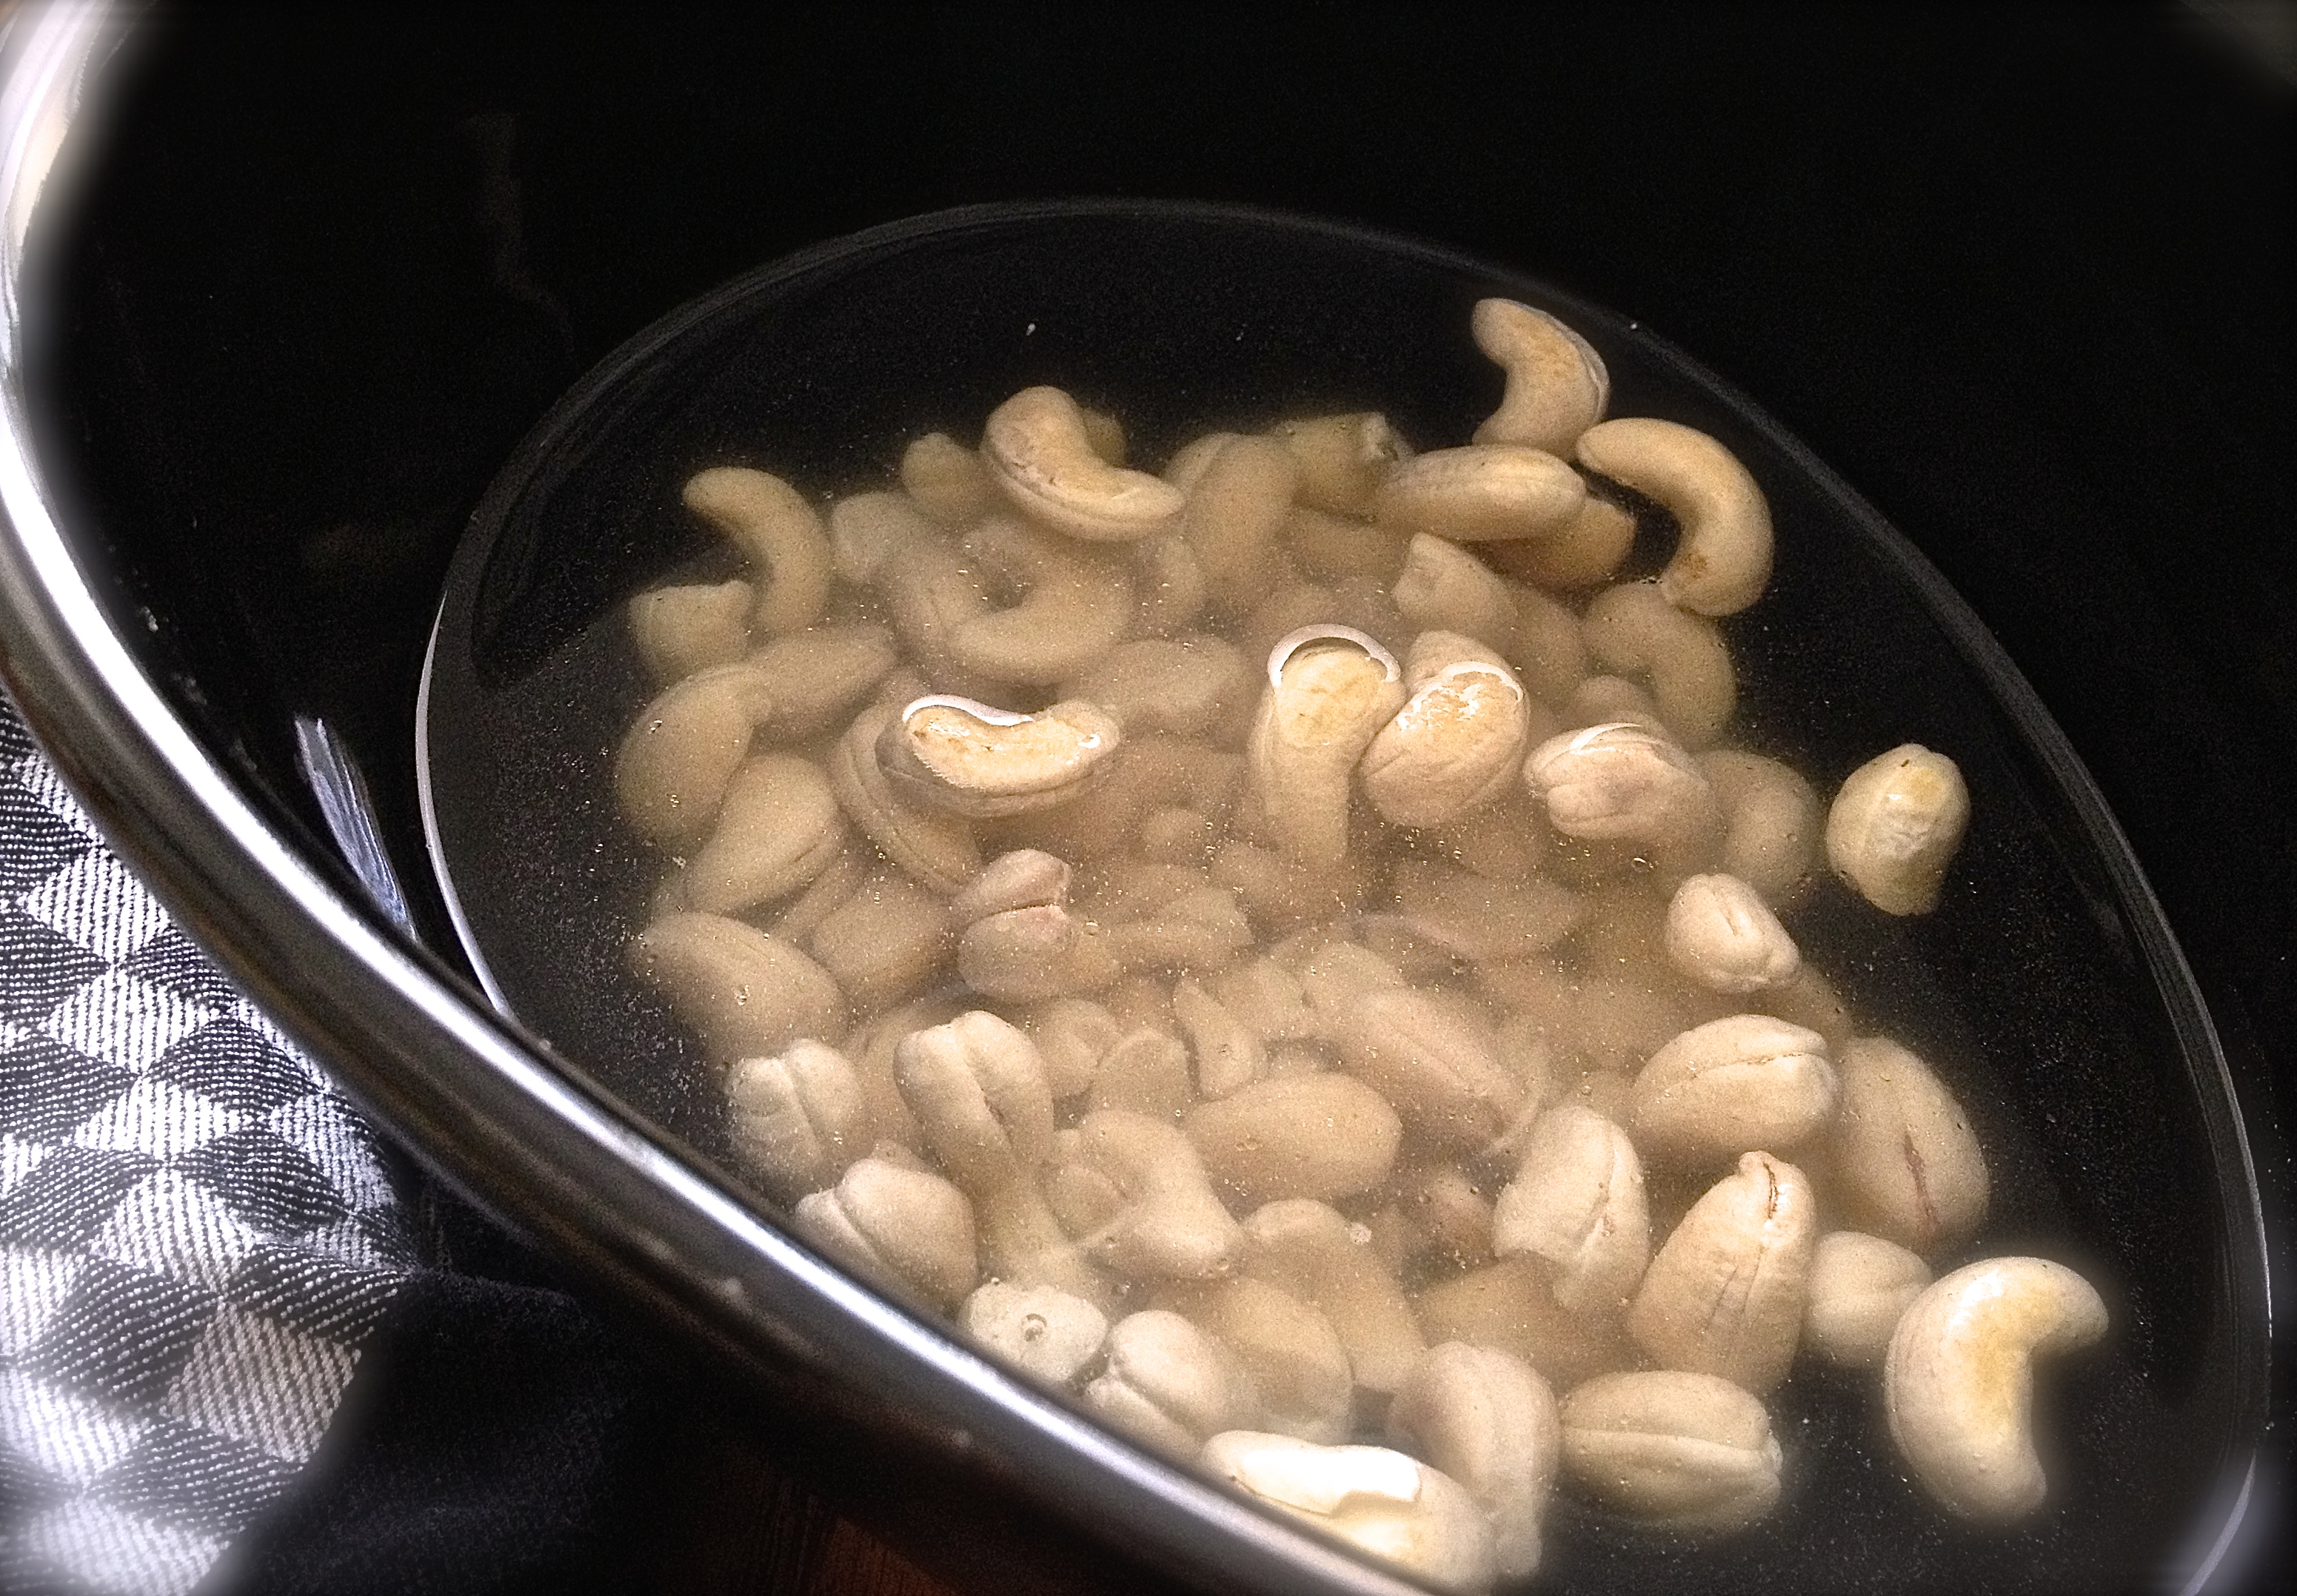 sweet-whipped-cashew-crème-crème-milk-soaking-nuts-image